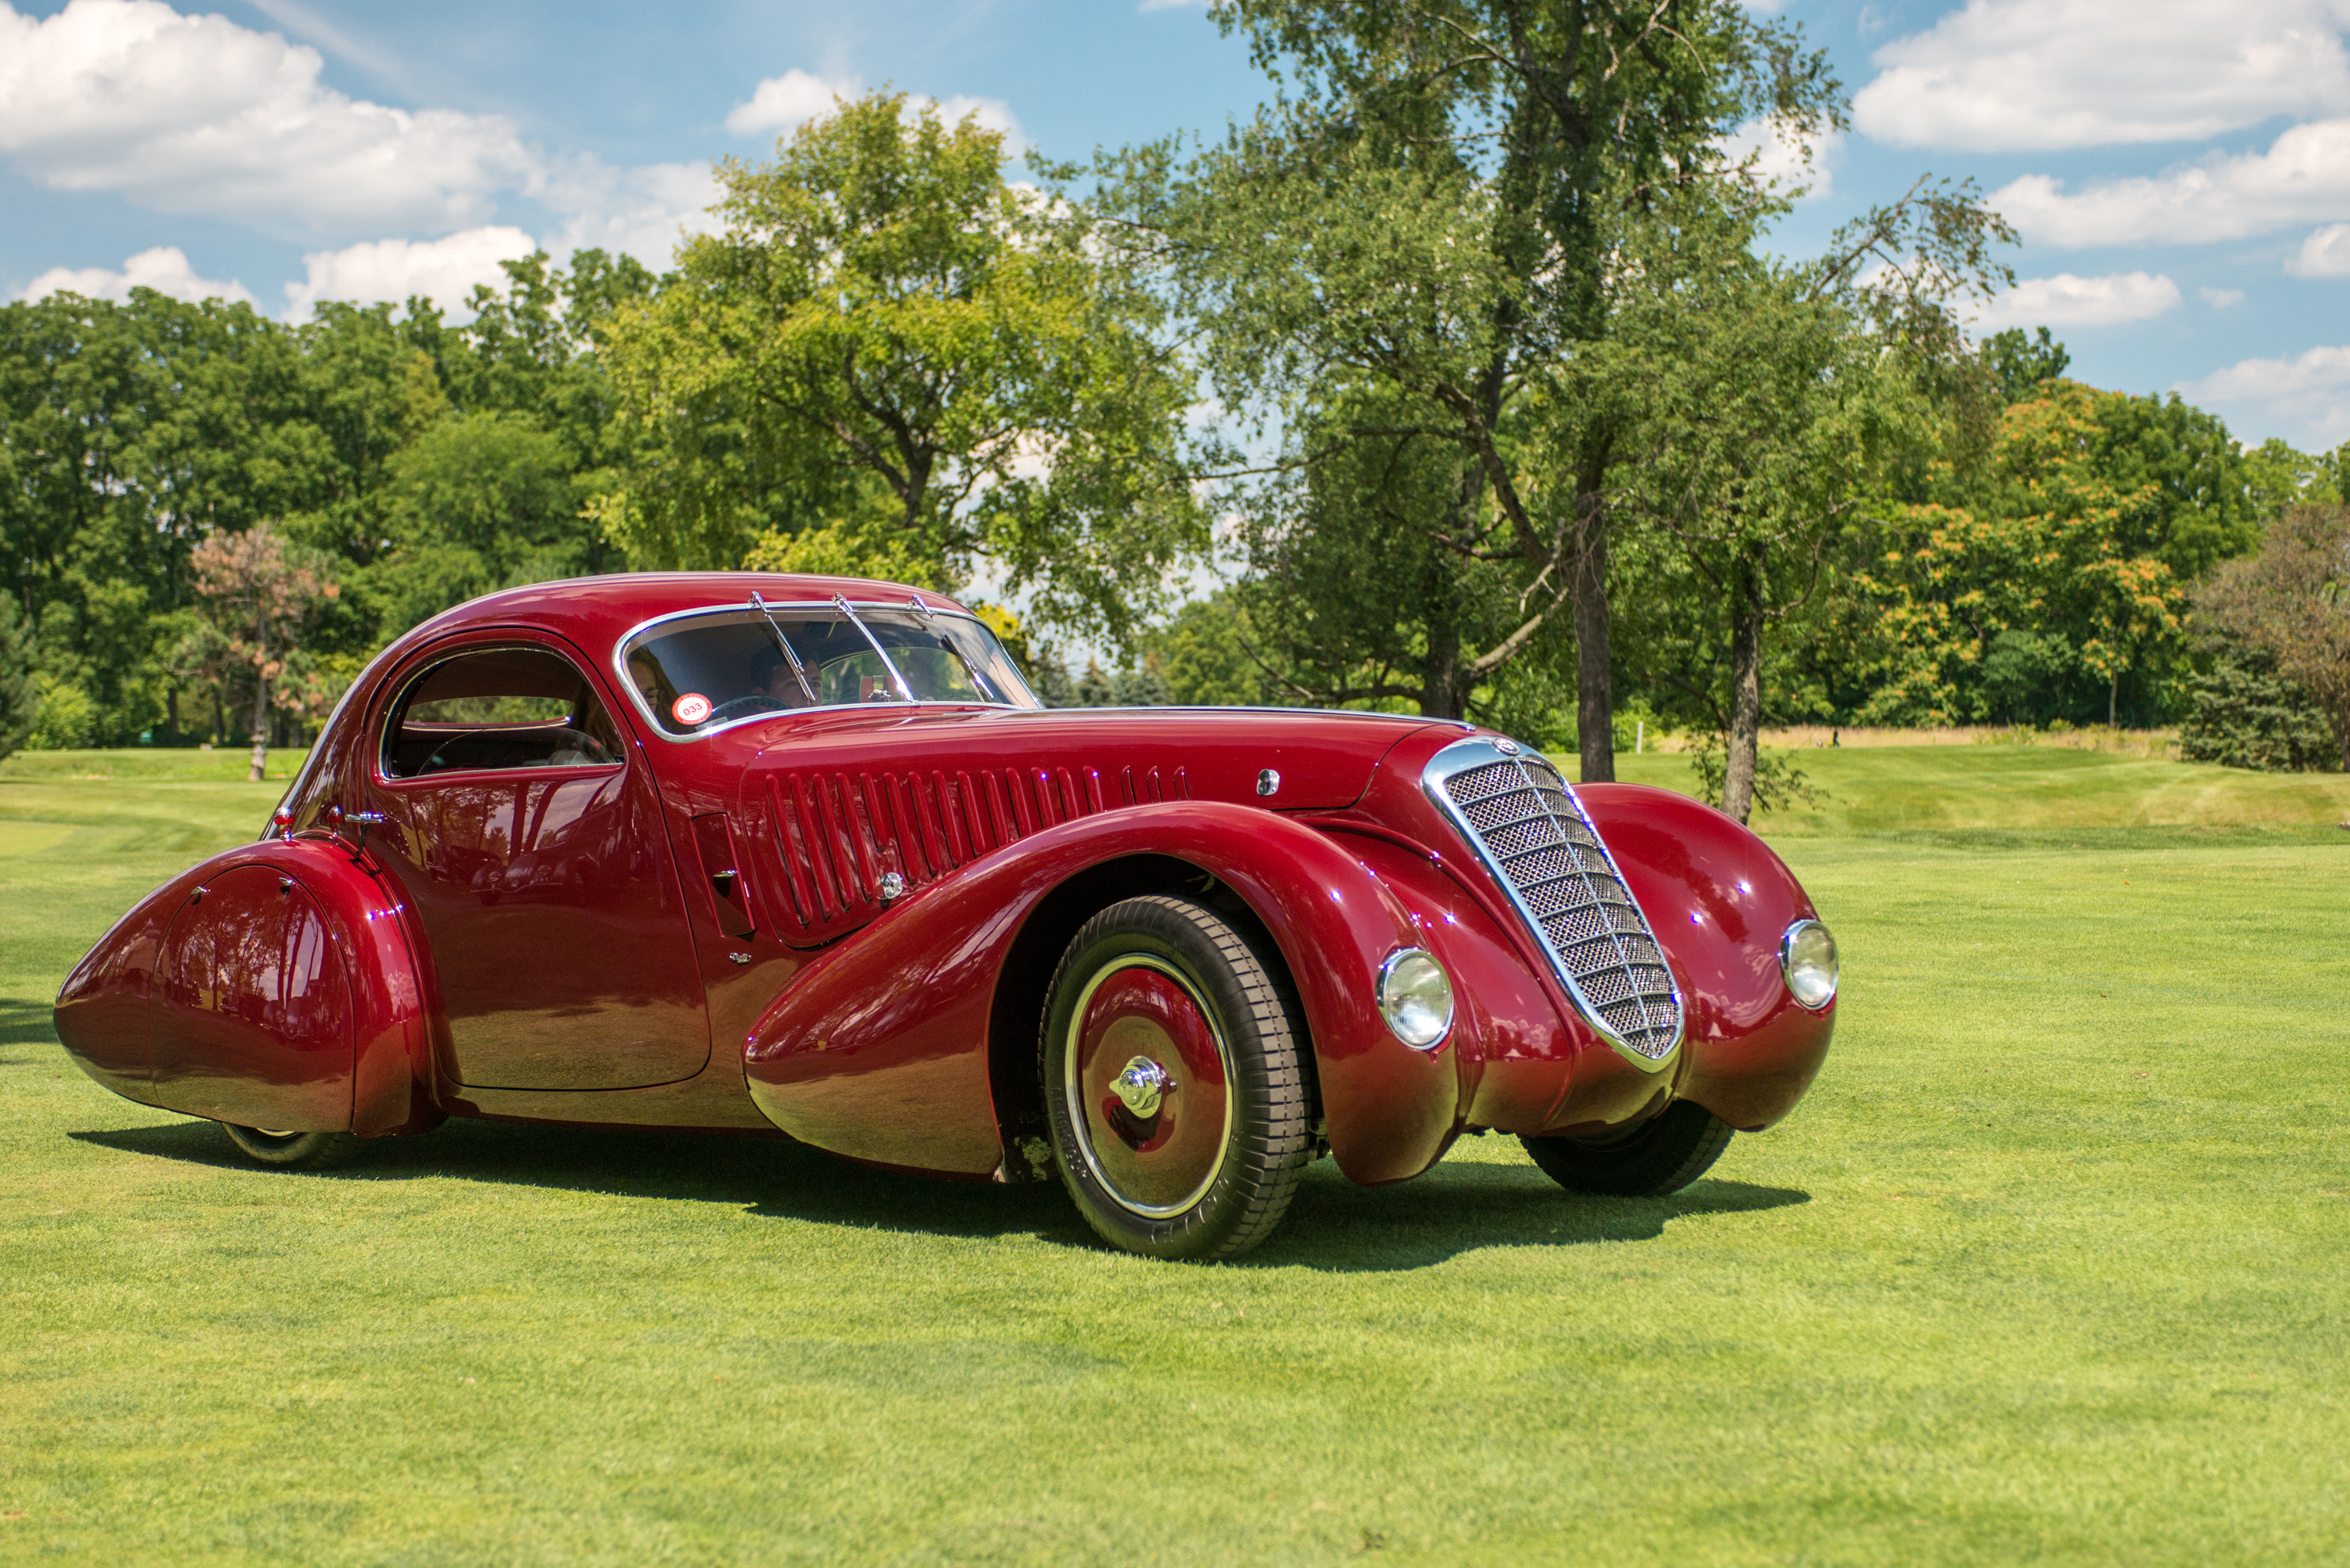 Concours D Elegance >> 2017 Concours D Elegance Of America Image Gallery Concours D